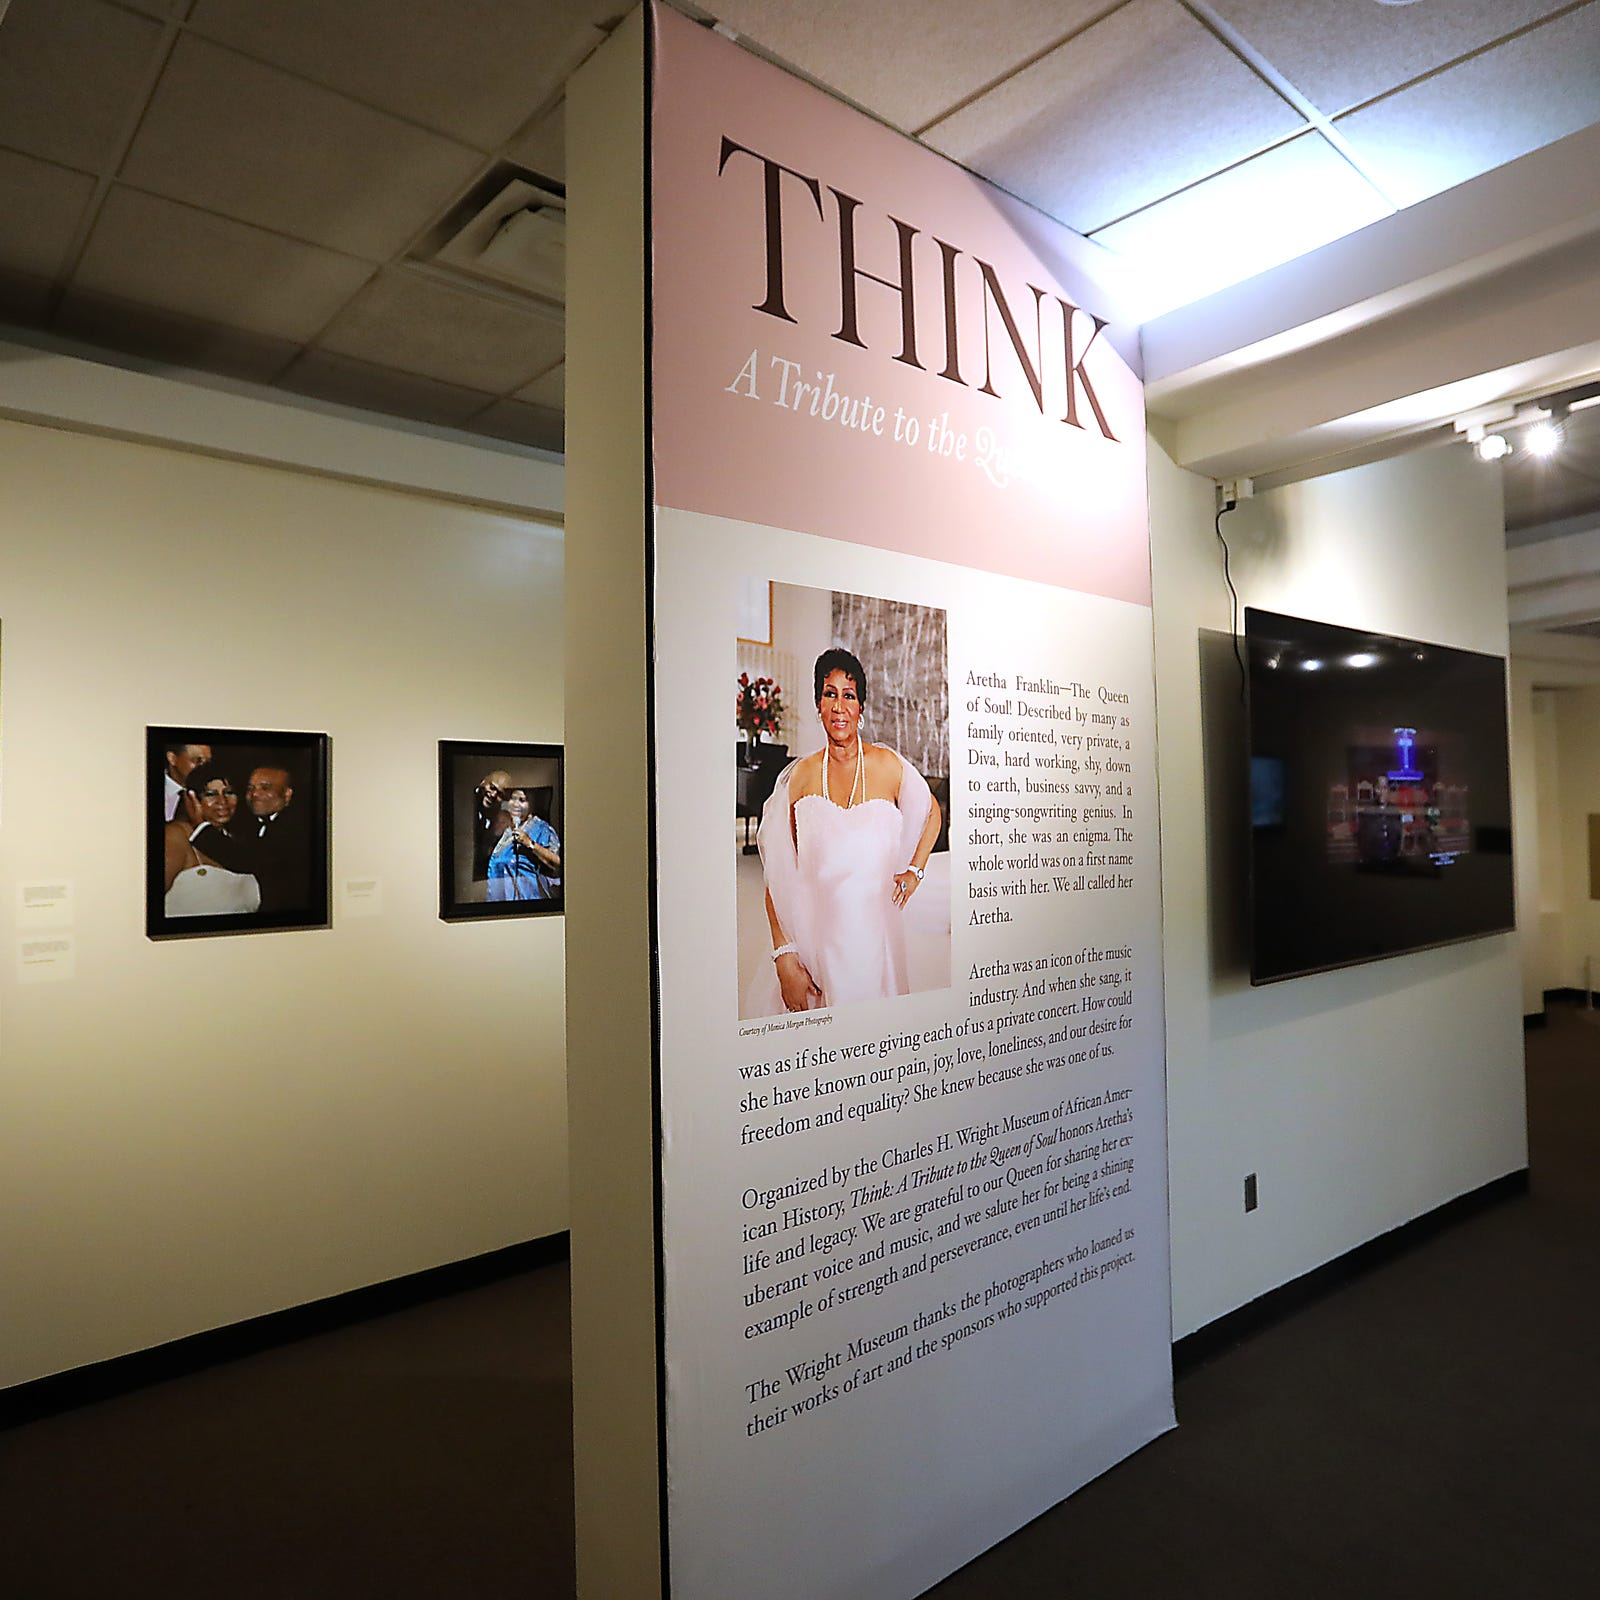 Aretha Franklin celebrated in Wright museum exhibit opening Tuesday